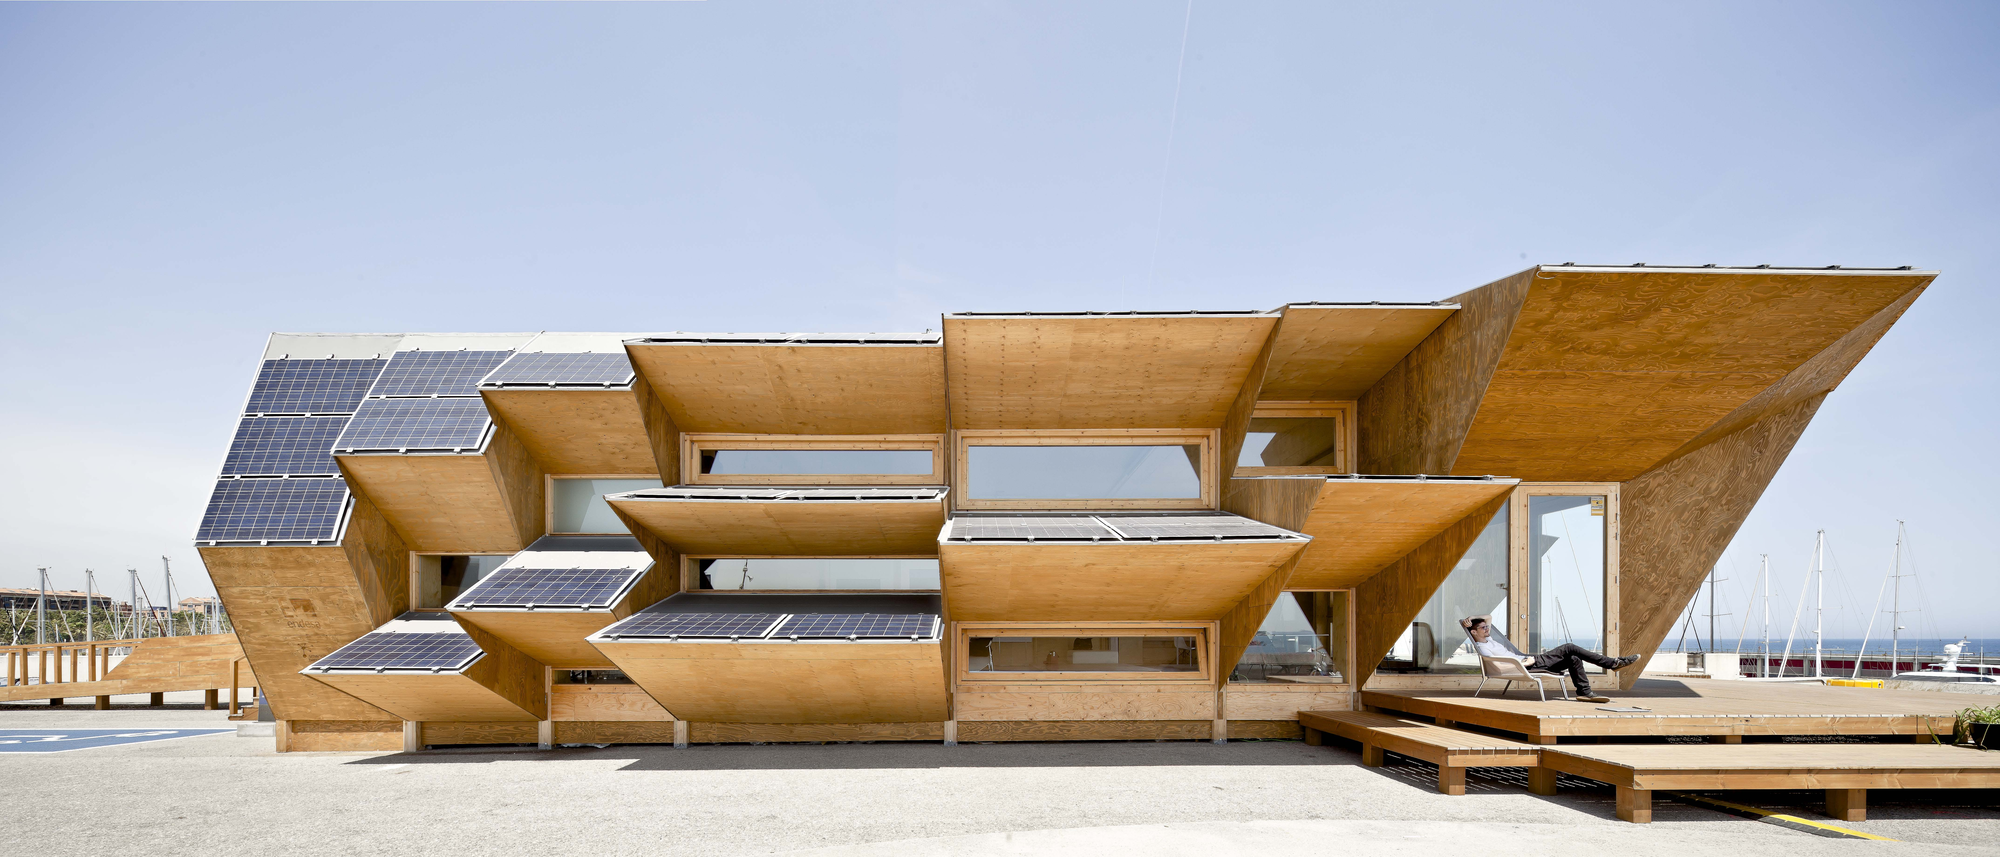 Gallery Of Endesa Pavilion Institute For Advanced